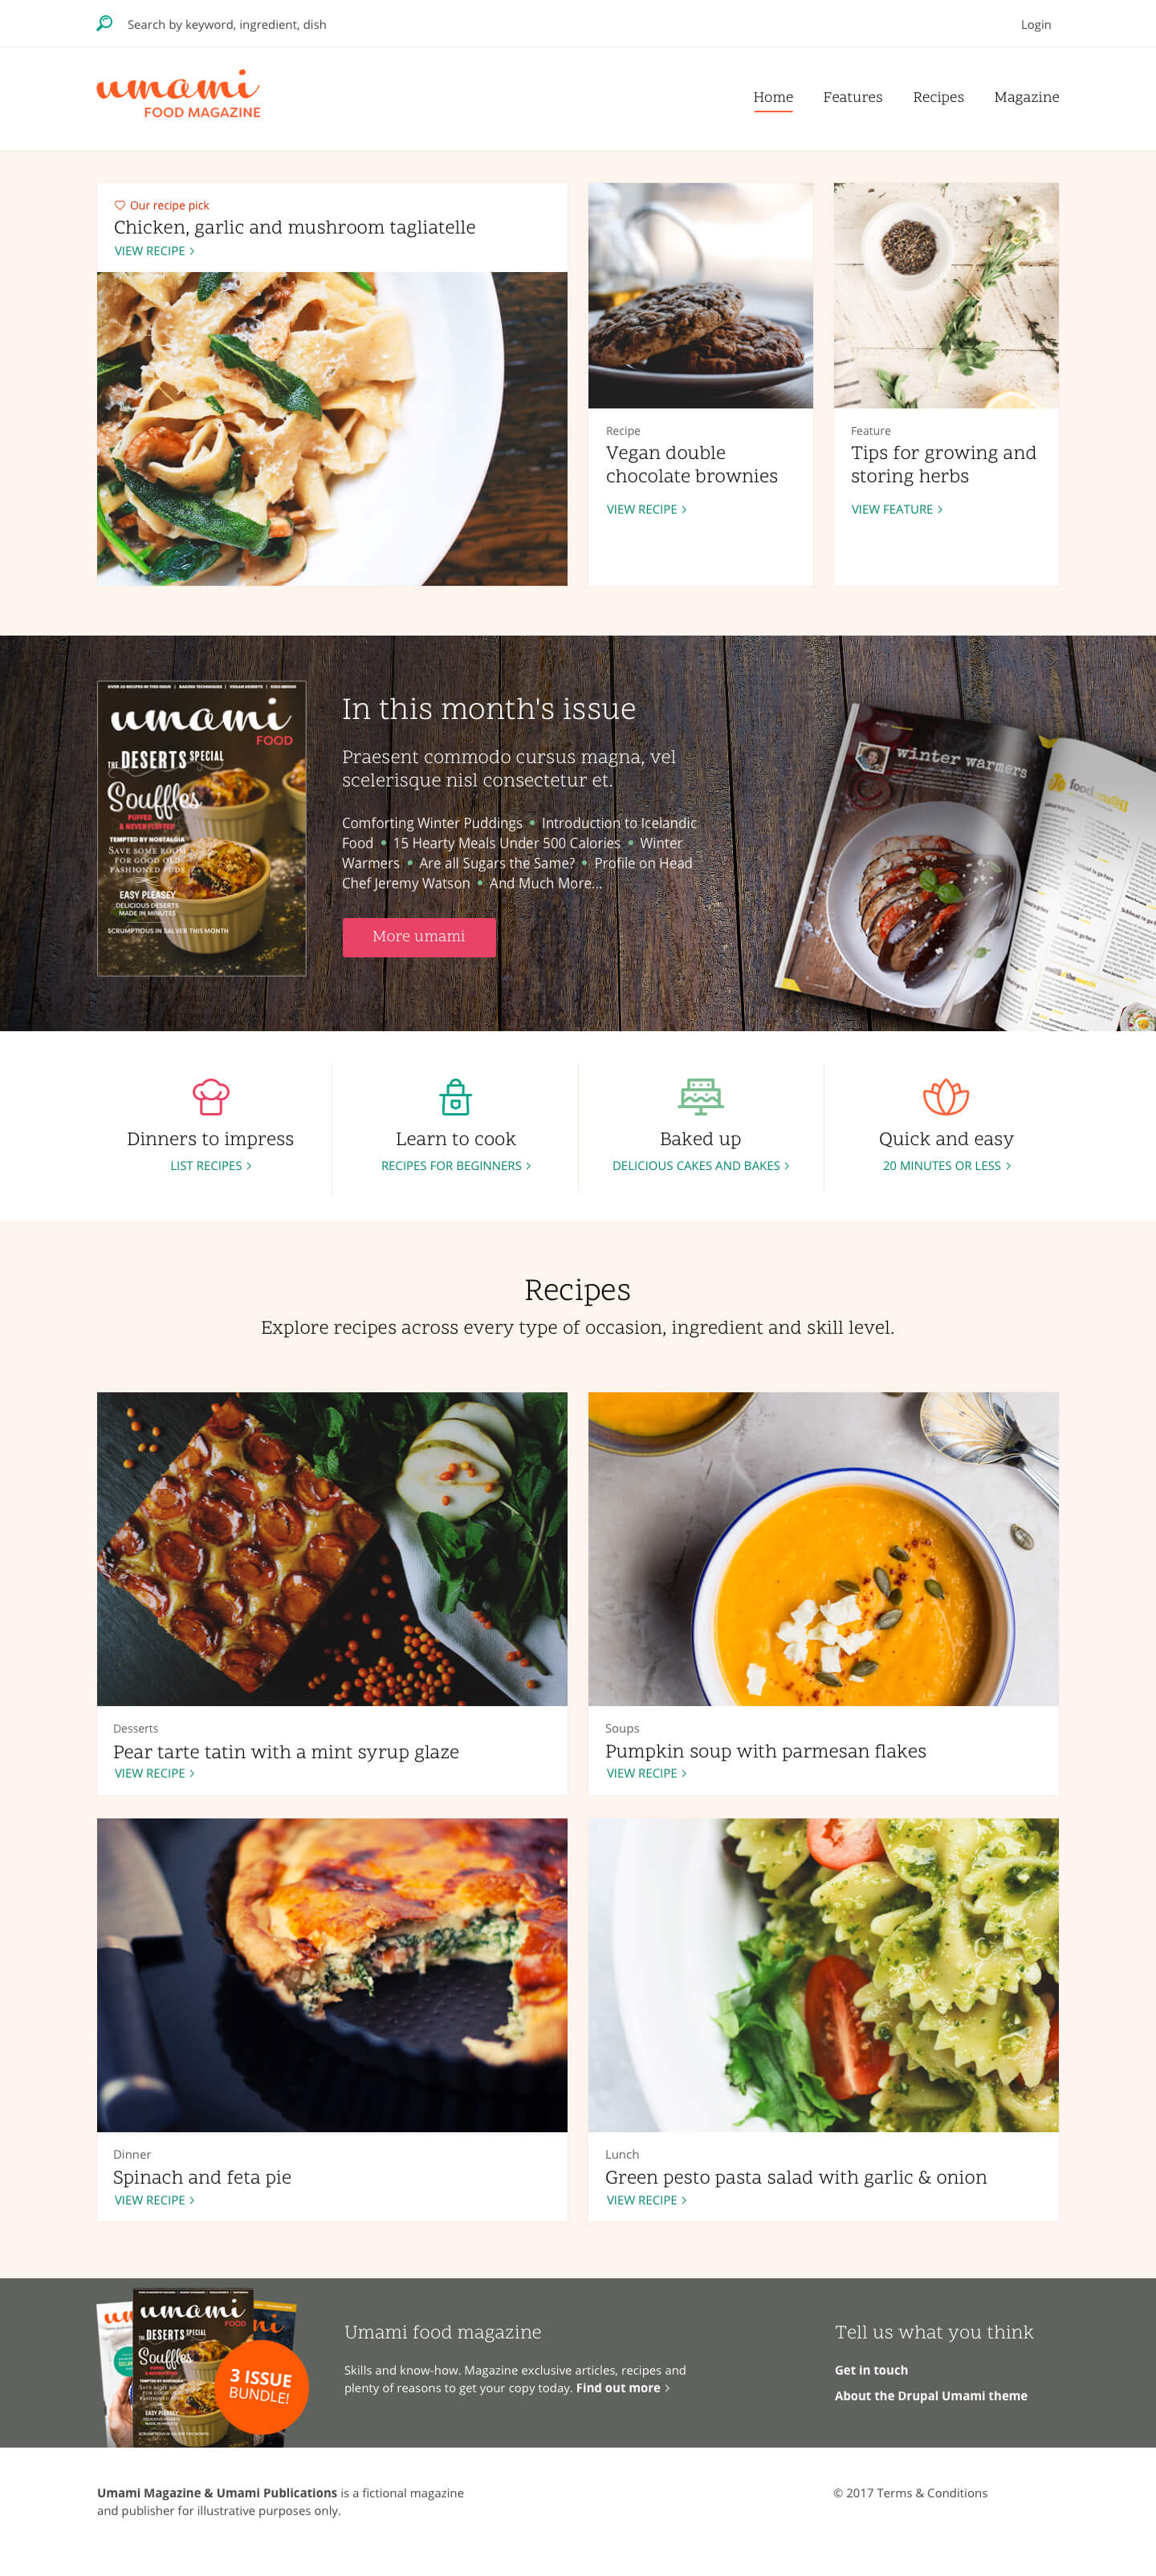 desktop version of a website with photos of food and cutlery